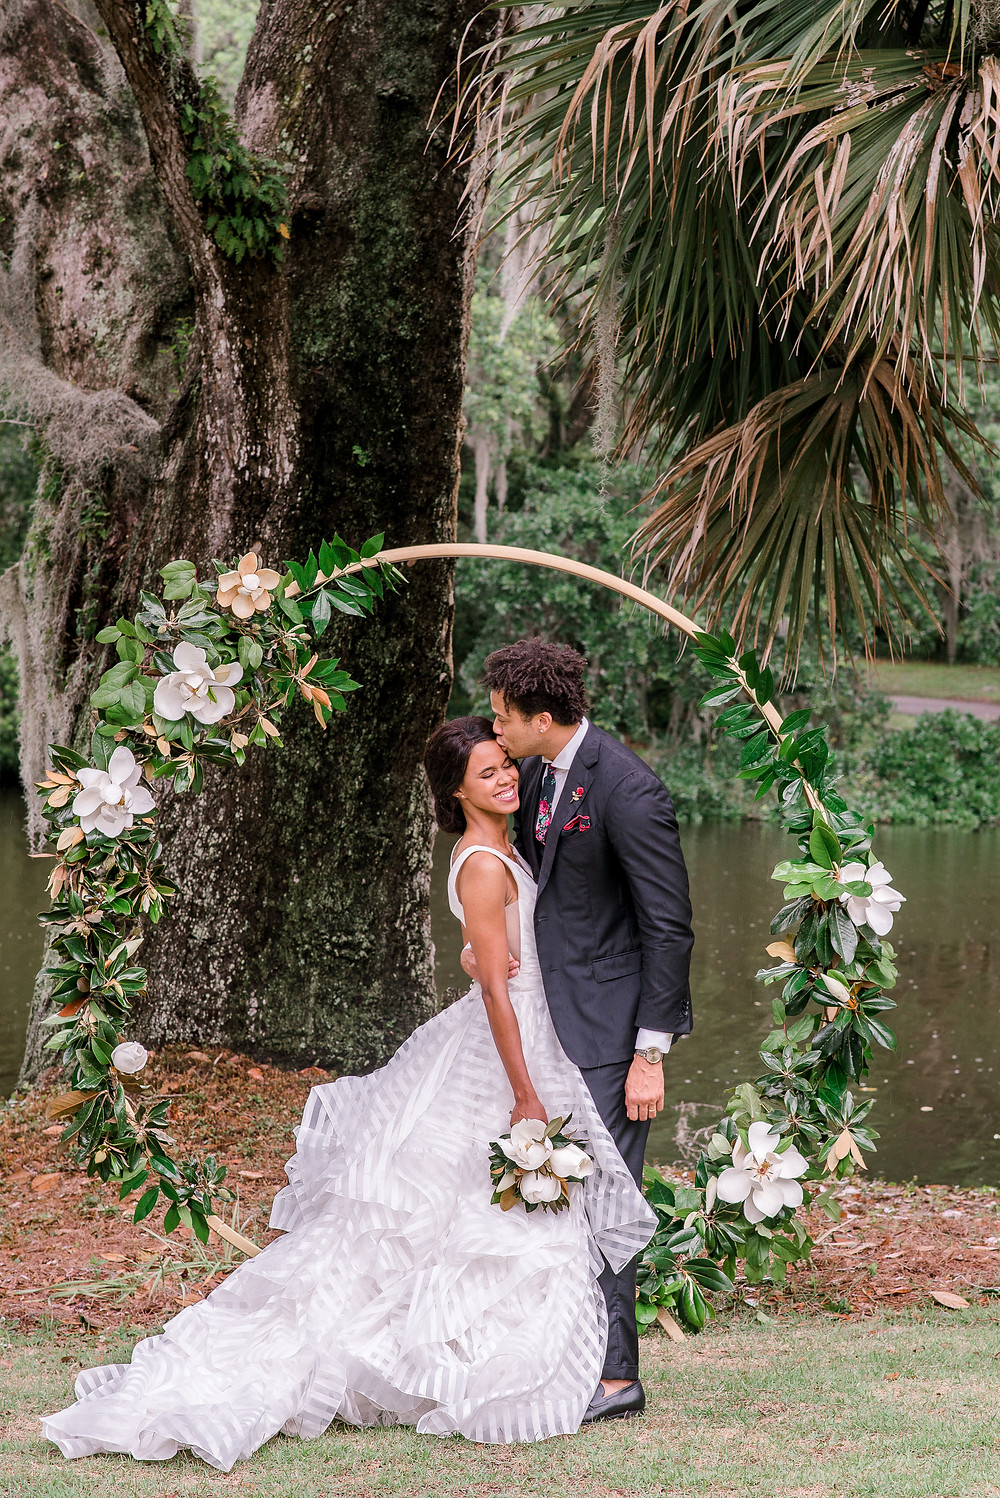 Floral arch for ceremony | Charleston photographer Nina Bashaw Photography | Columbia, SC wedding photographers | Wedding at Legare Waring House | Morilee wedding dress | Southern wedding venue